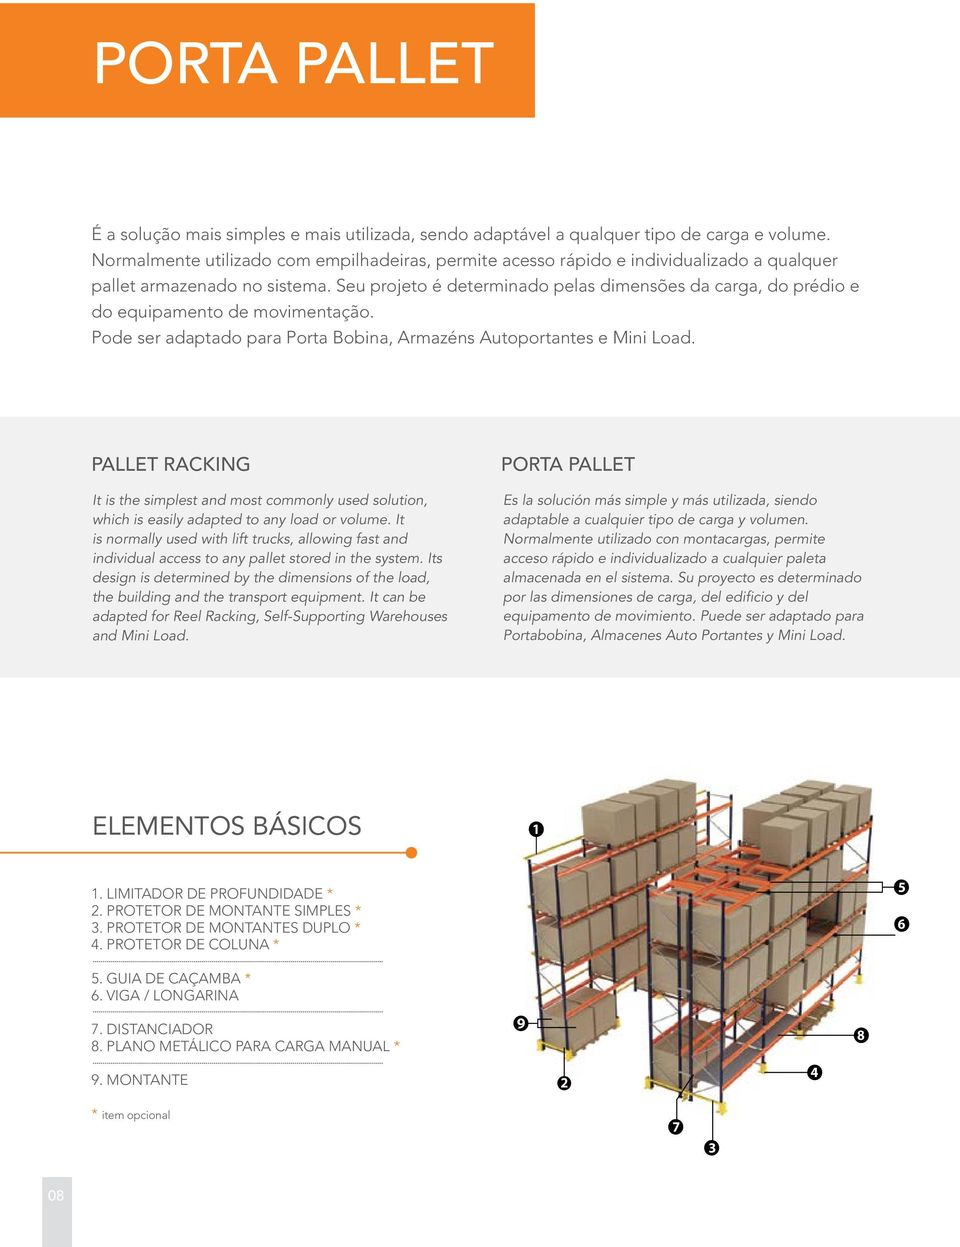 PALLET RACKING It is the simplest and most commonly used solution, which is easily adapted to any load or volume It is normally used with lift trucks, allowing fast and individual access to any